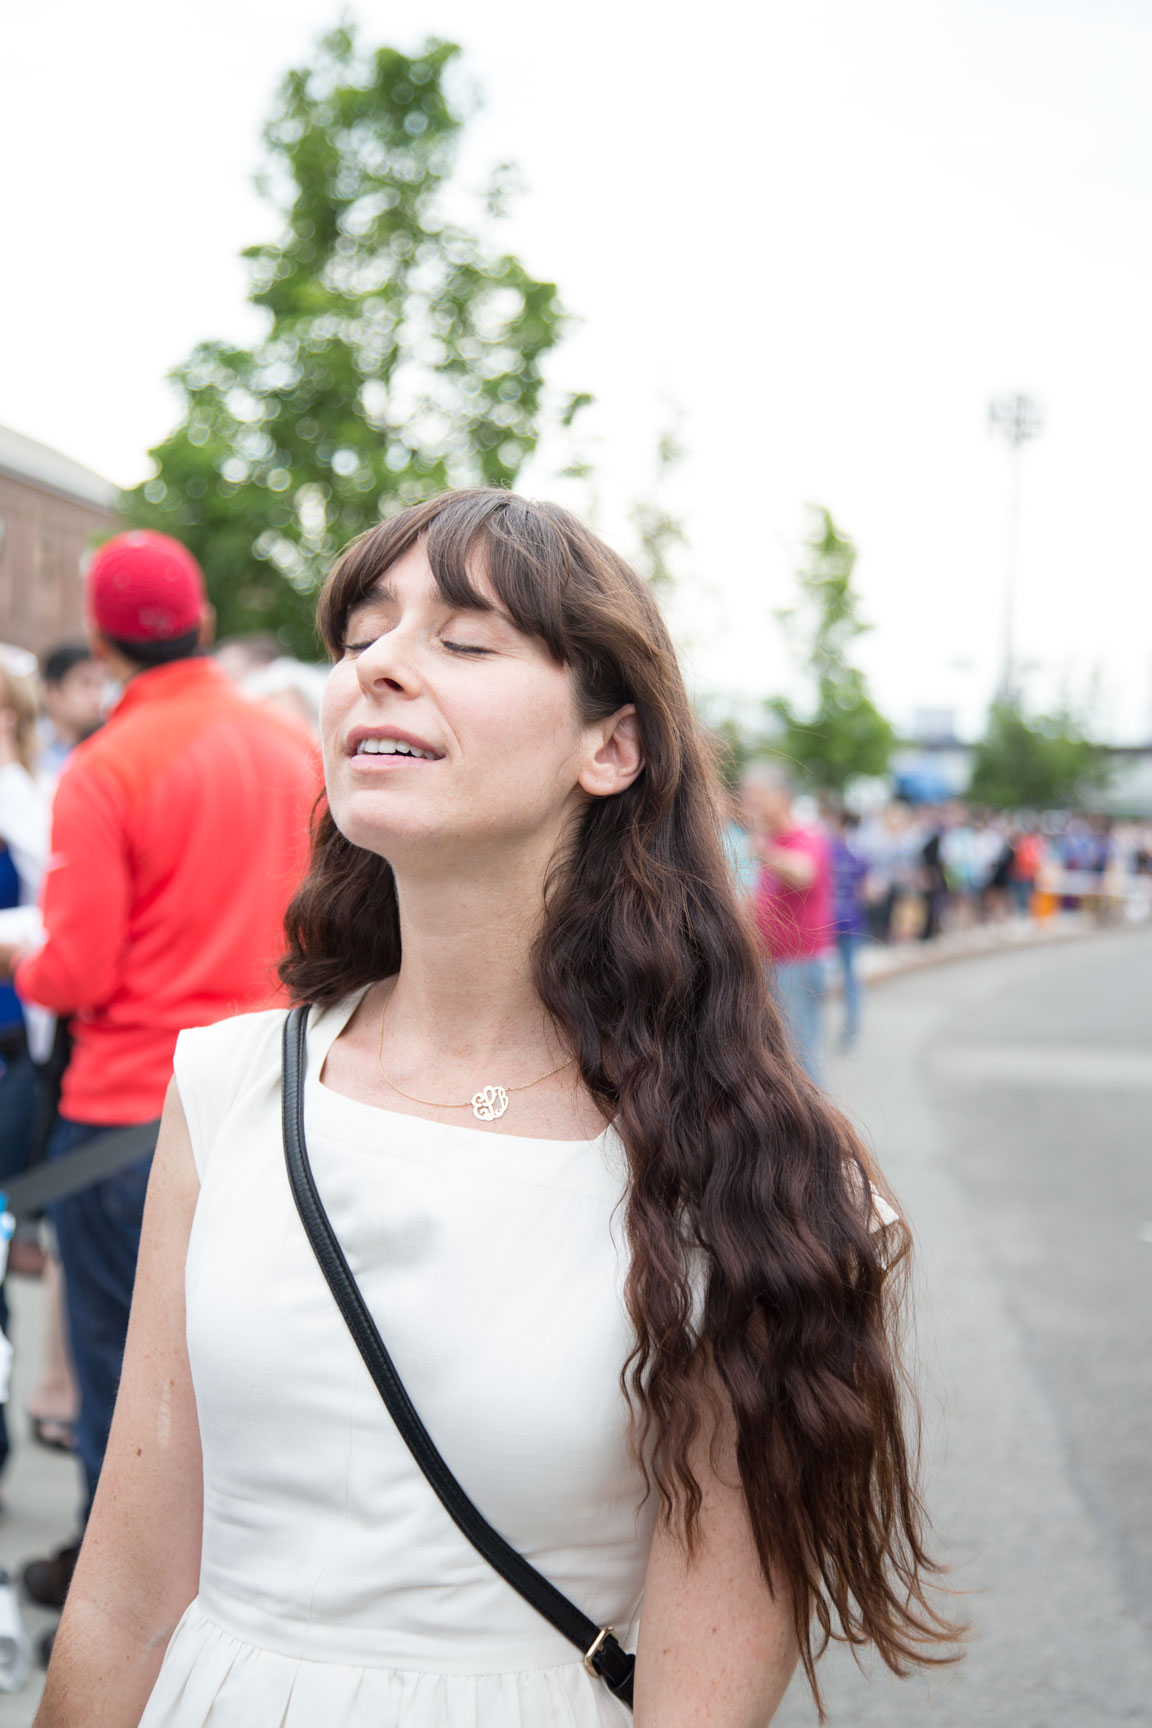 Elizabeth Lawrence takes it all in, as fans line up at the Brooklyn Navy Yard to witness Hillary Clinton become the first female nominee of a major political party. June 7, 2016. Photo by  Kristen Blush .